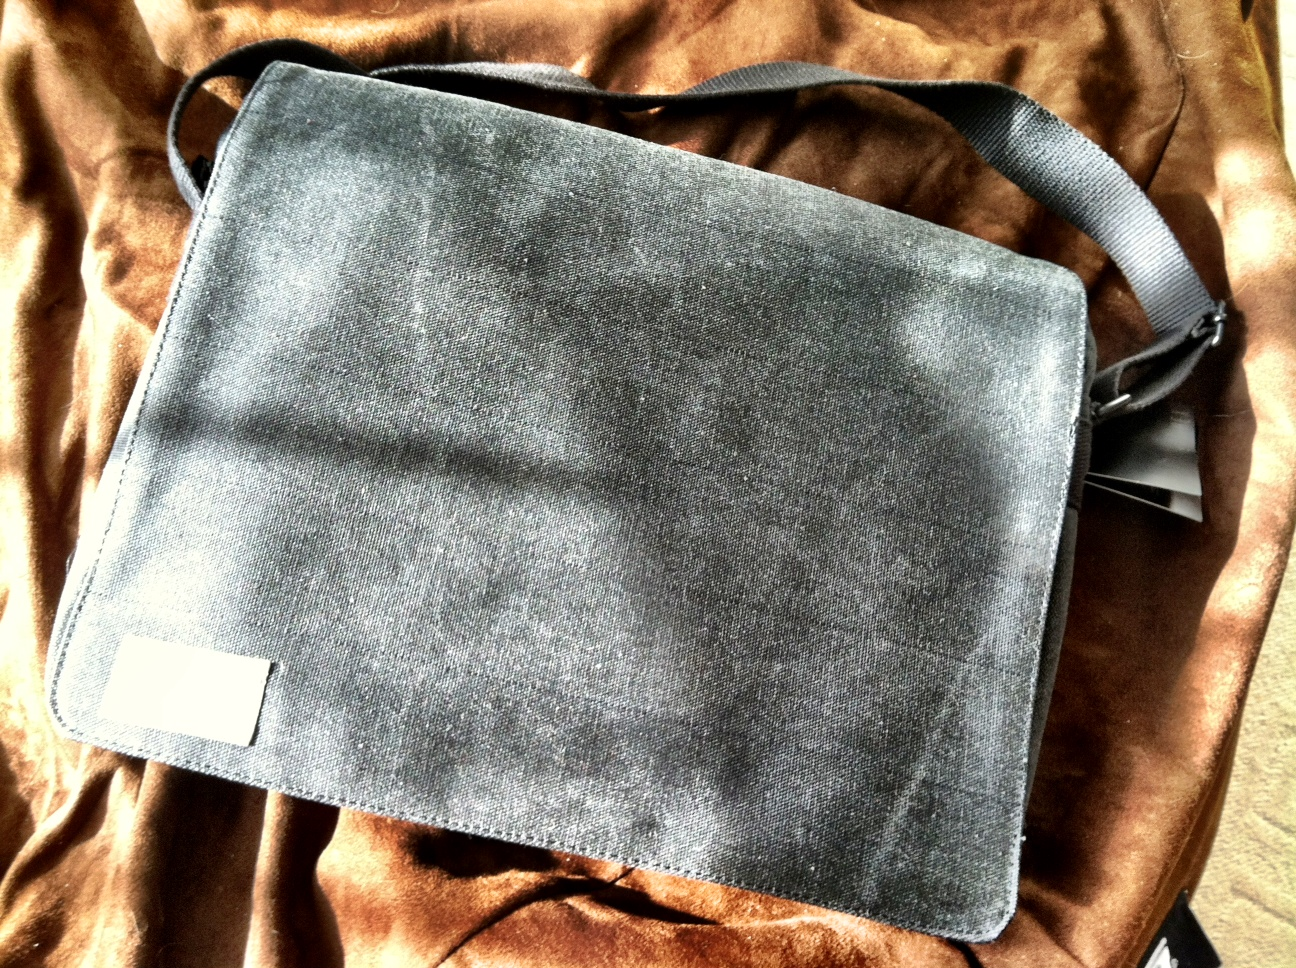 A minimalist messenger bag for your laptop and iPad